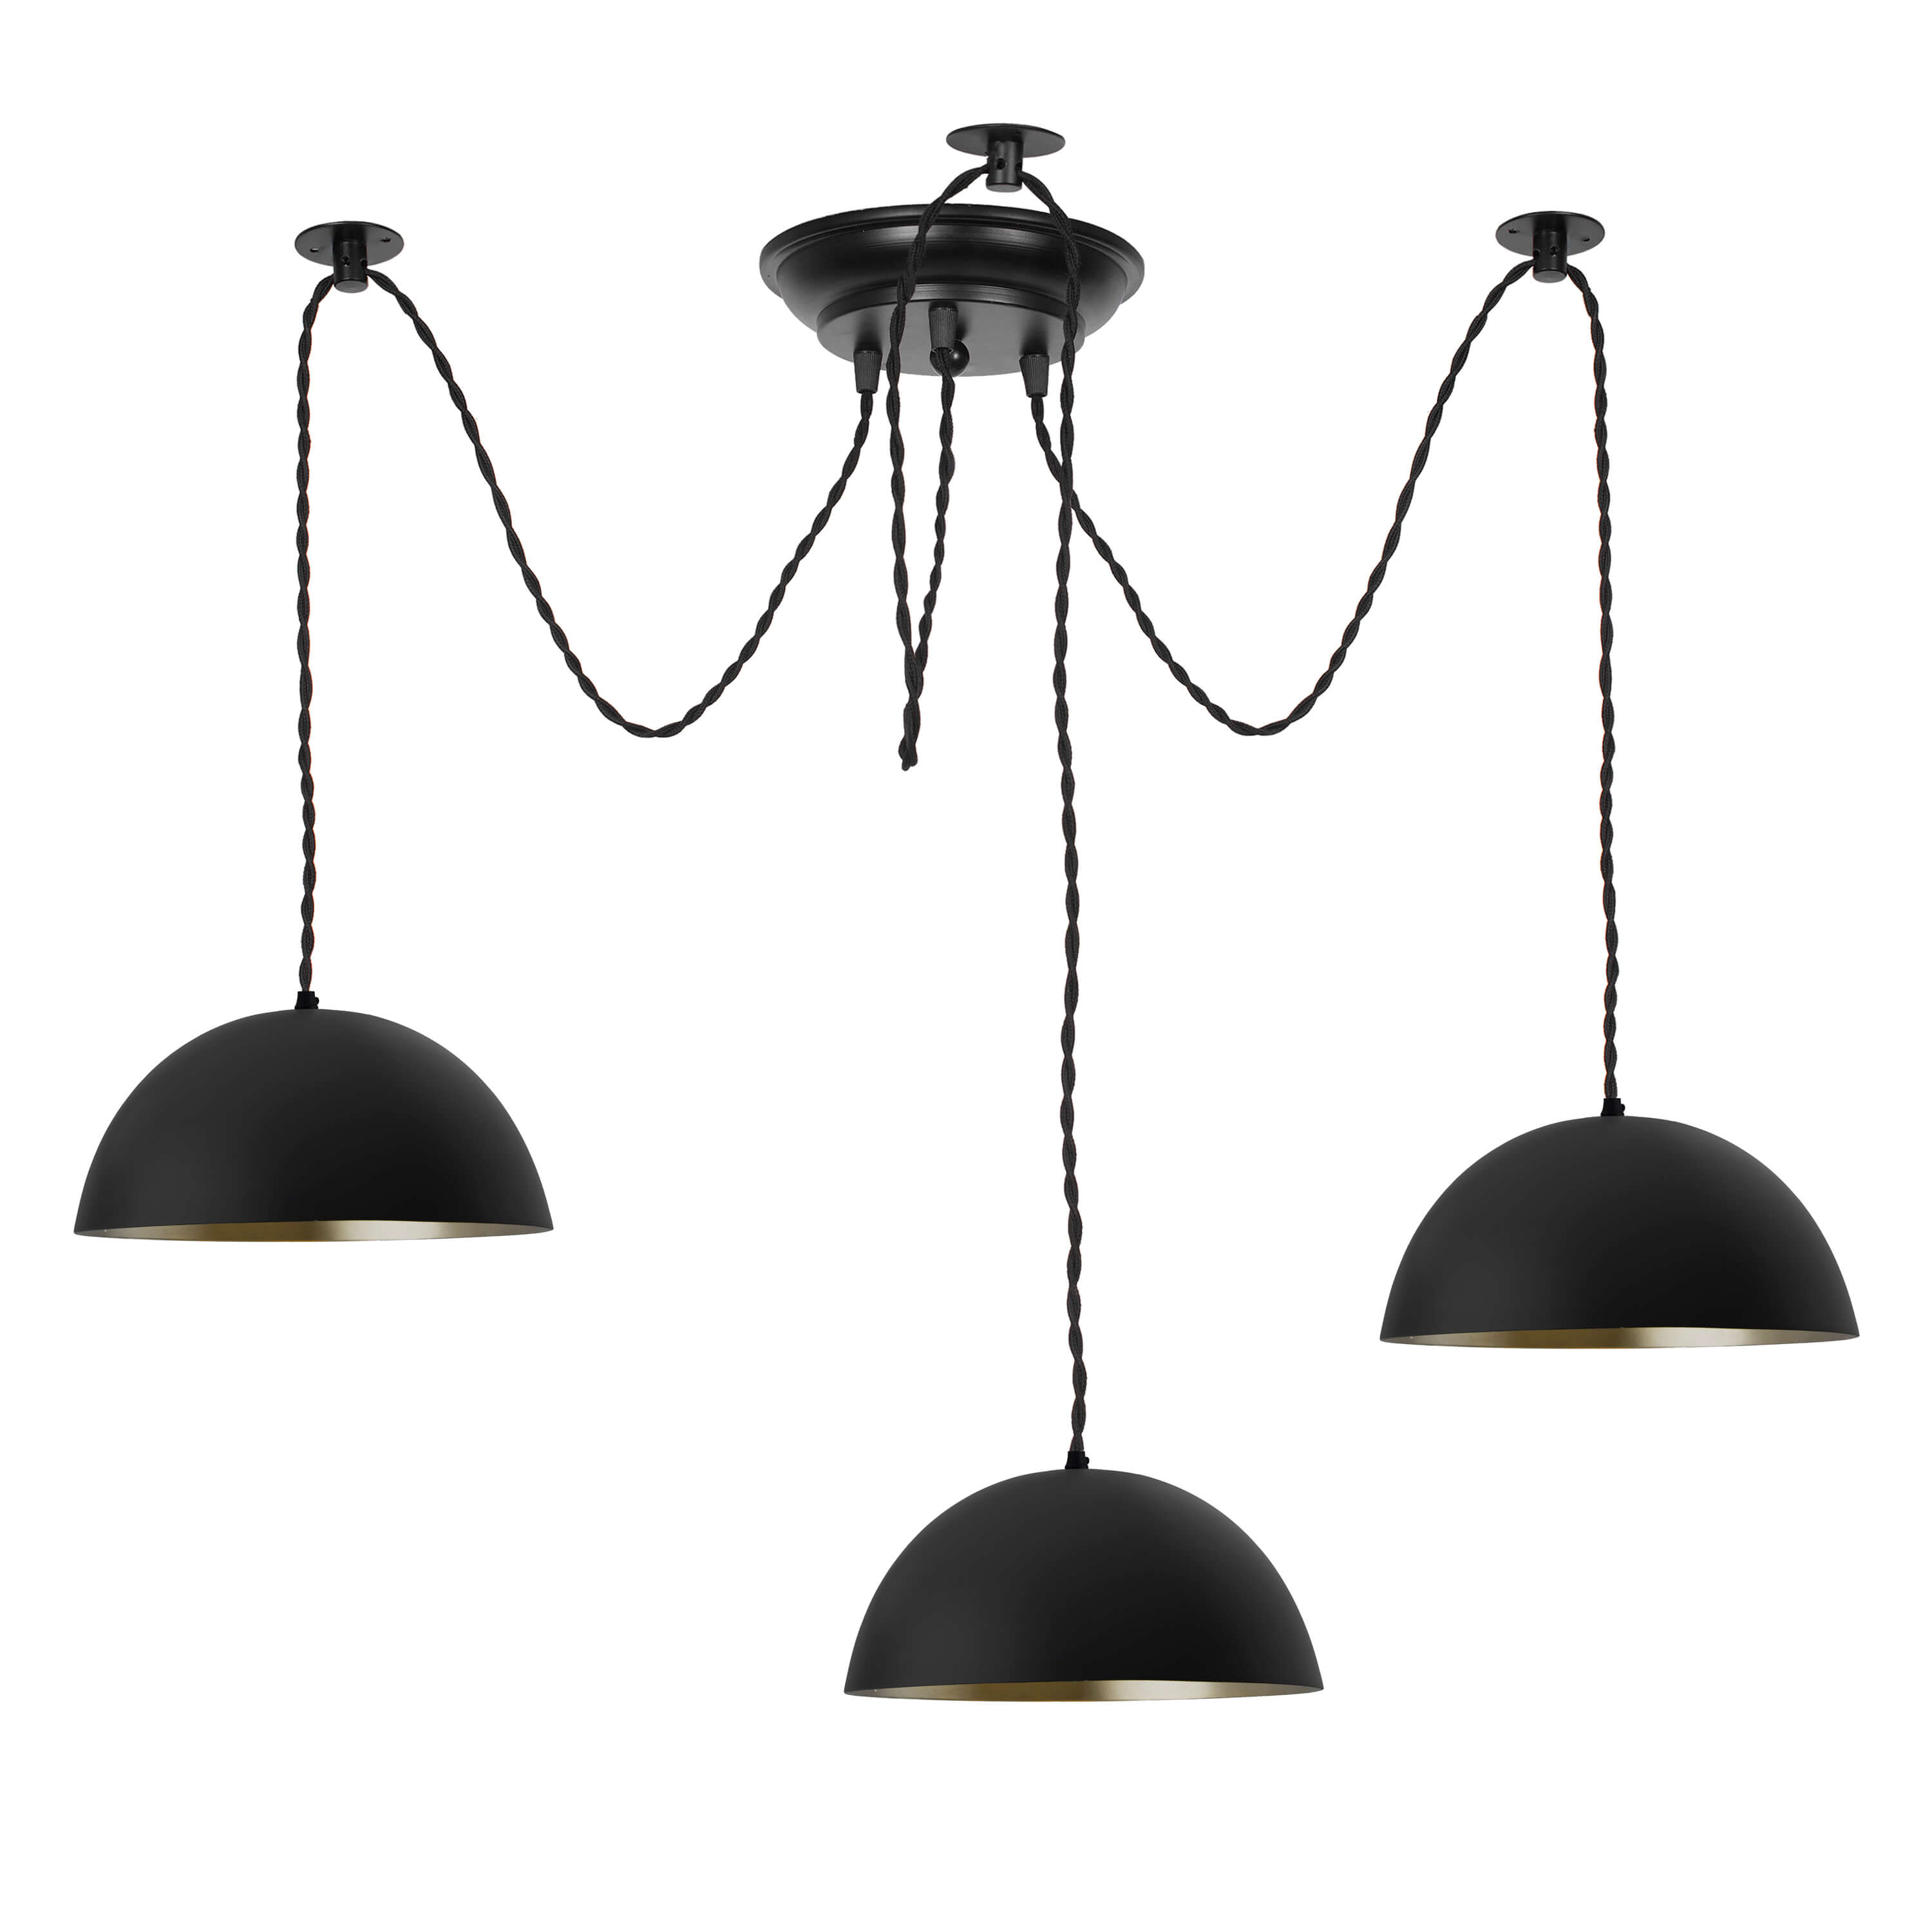 "3 Arms Spider Chandelier Lamp, 8"" Black Semi-Globe Pendant Lamp, Vintage Edison Style E 27 Adjustable DIY Ceiling Pendant Light, E27 Rustic Cluster Hanging Light(1.25 M, Black Twisted Wire)"